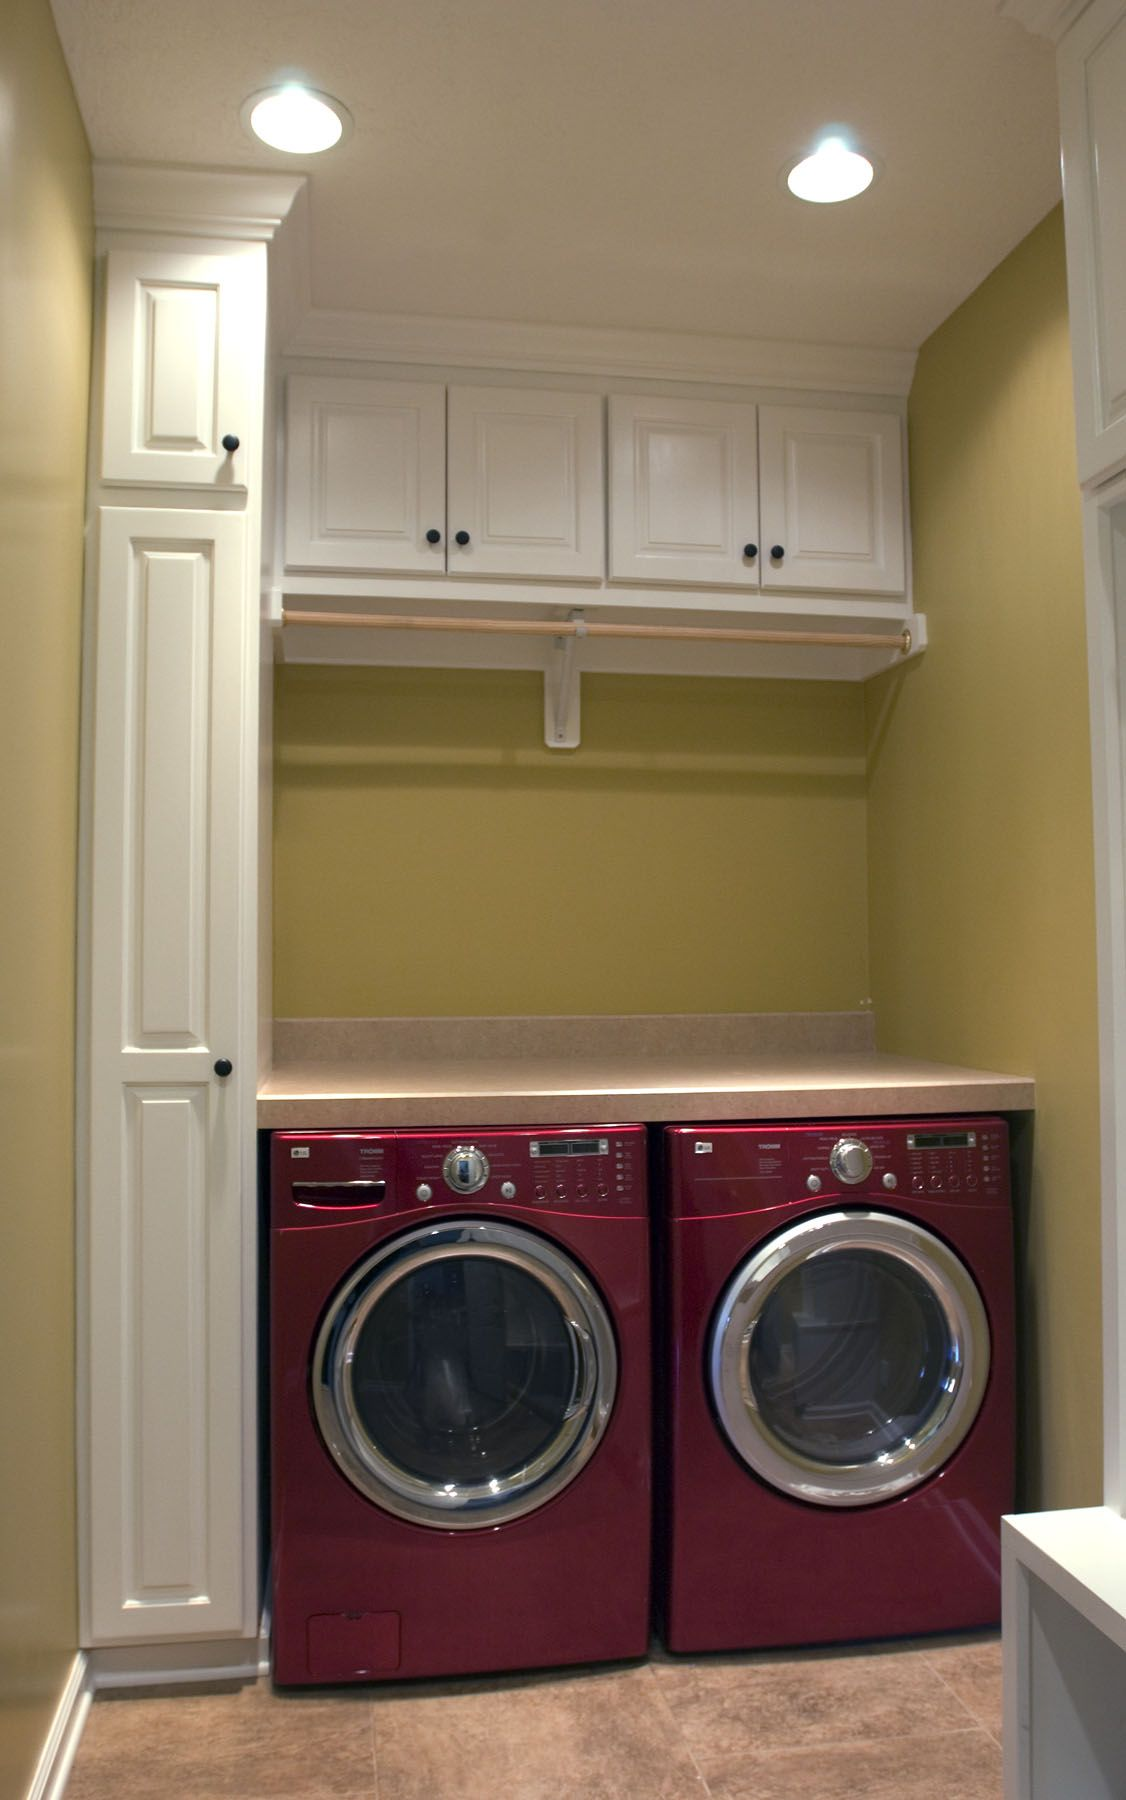 Bud Laundry Room Makeover Reveal Craving some Creativity Small or Closet Laundry Room Makeover